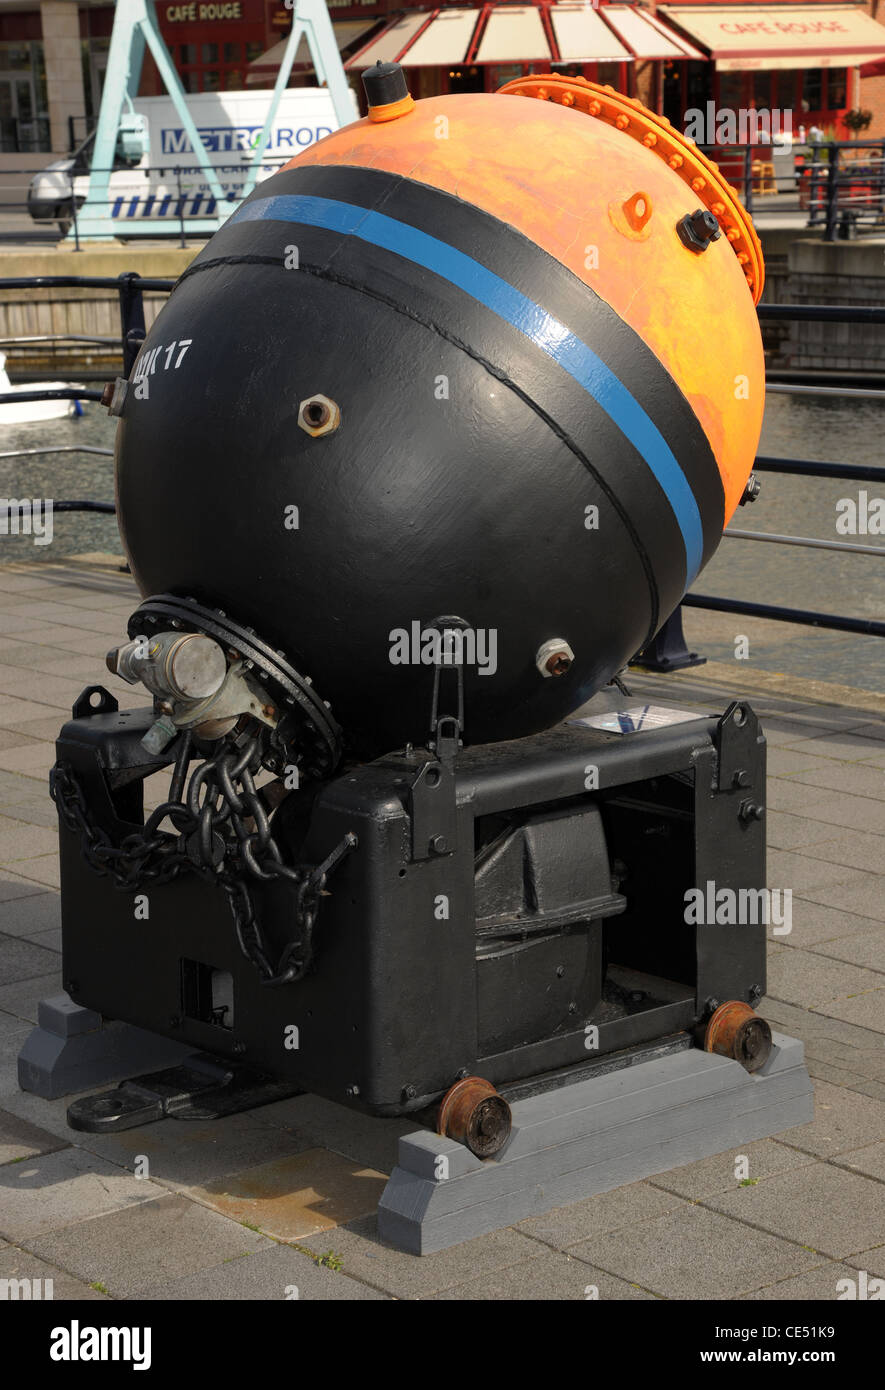 Naval sea mine Mk.17. This is an inert example on display at Gunwharf Quays, Portsmouth. Active mines would hold - Stock Image